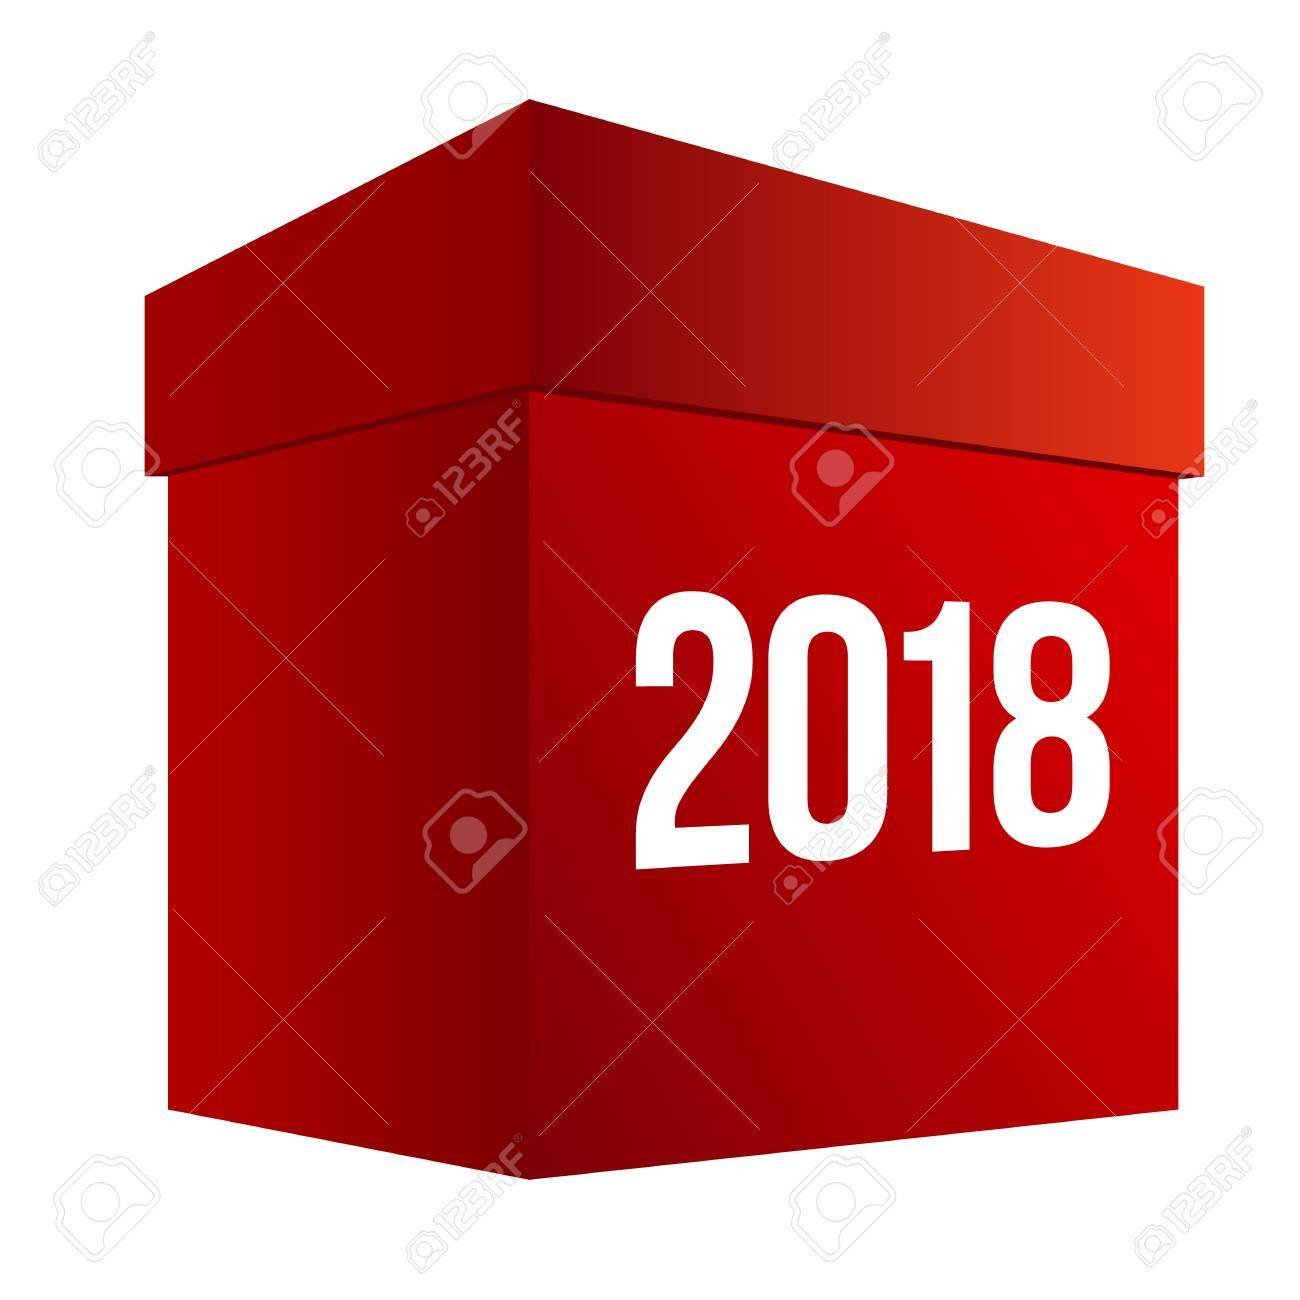 new year shopping big red present box with numbers 2018 isolated on white background